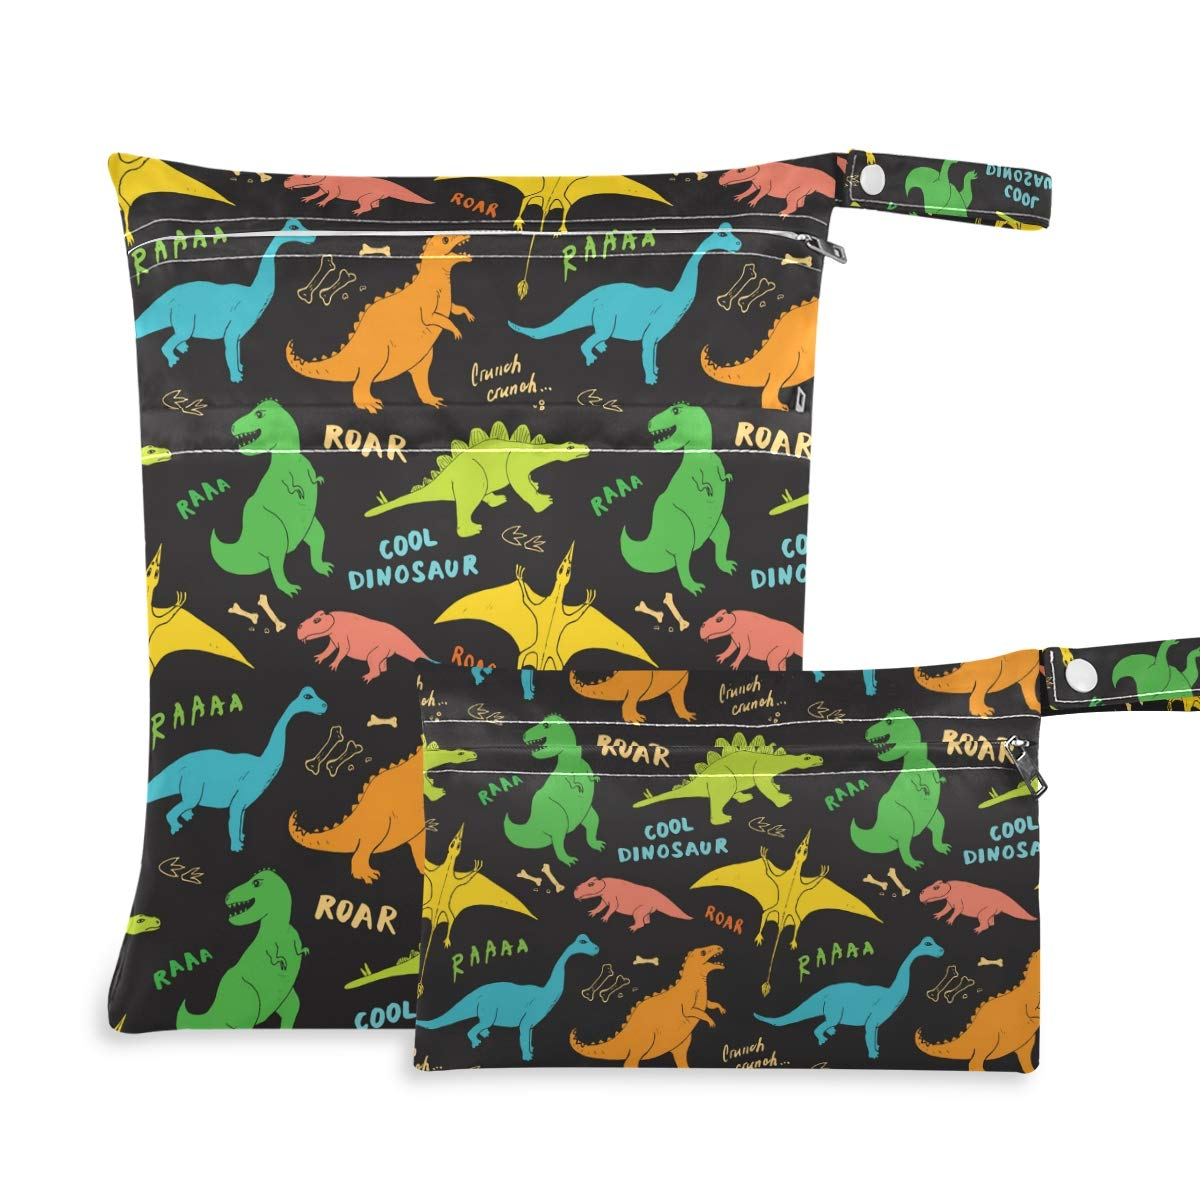 Moudou 2pcs Dinosaur Wet Dry Bag Waterproof Reusable Baby Cloth Diaper Wet Dry Organizer with Two Zippered Pockets for Travel, Beach, Pool, Stroller, Diapers, Dirty Gym Clothes, Wet Swimsuits